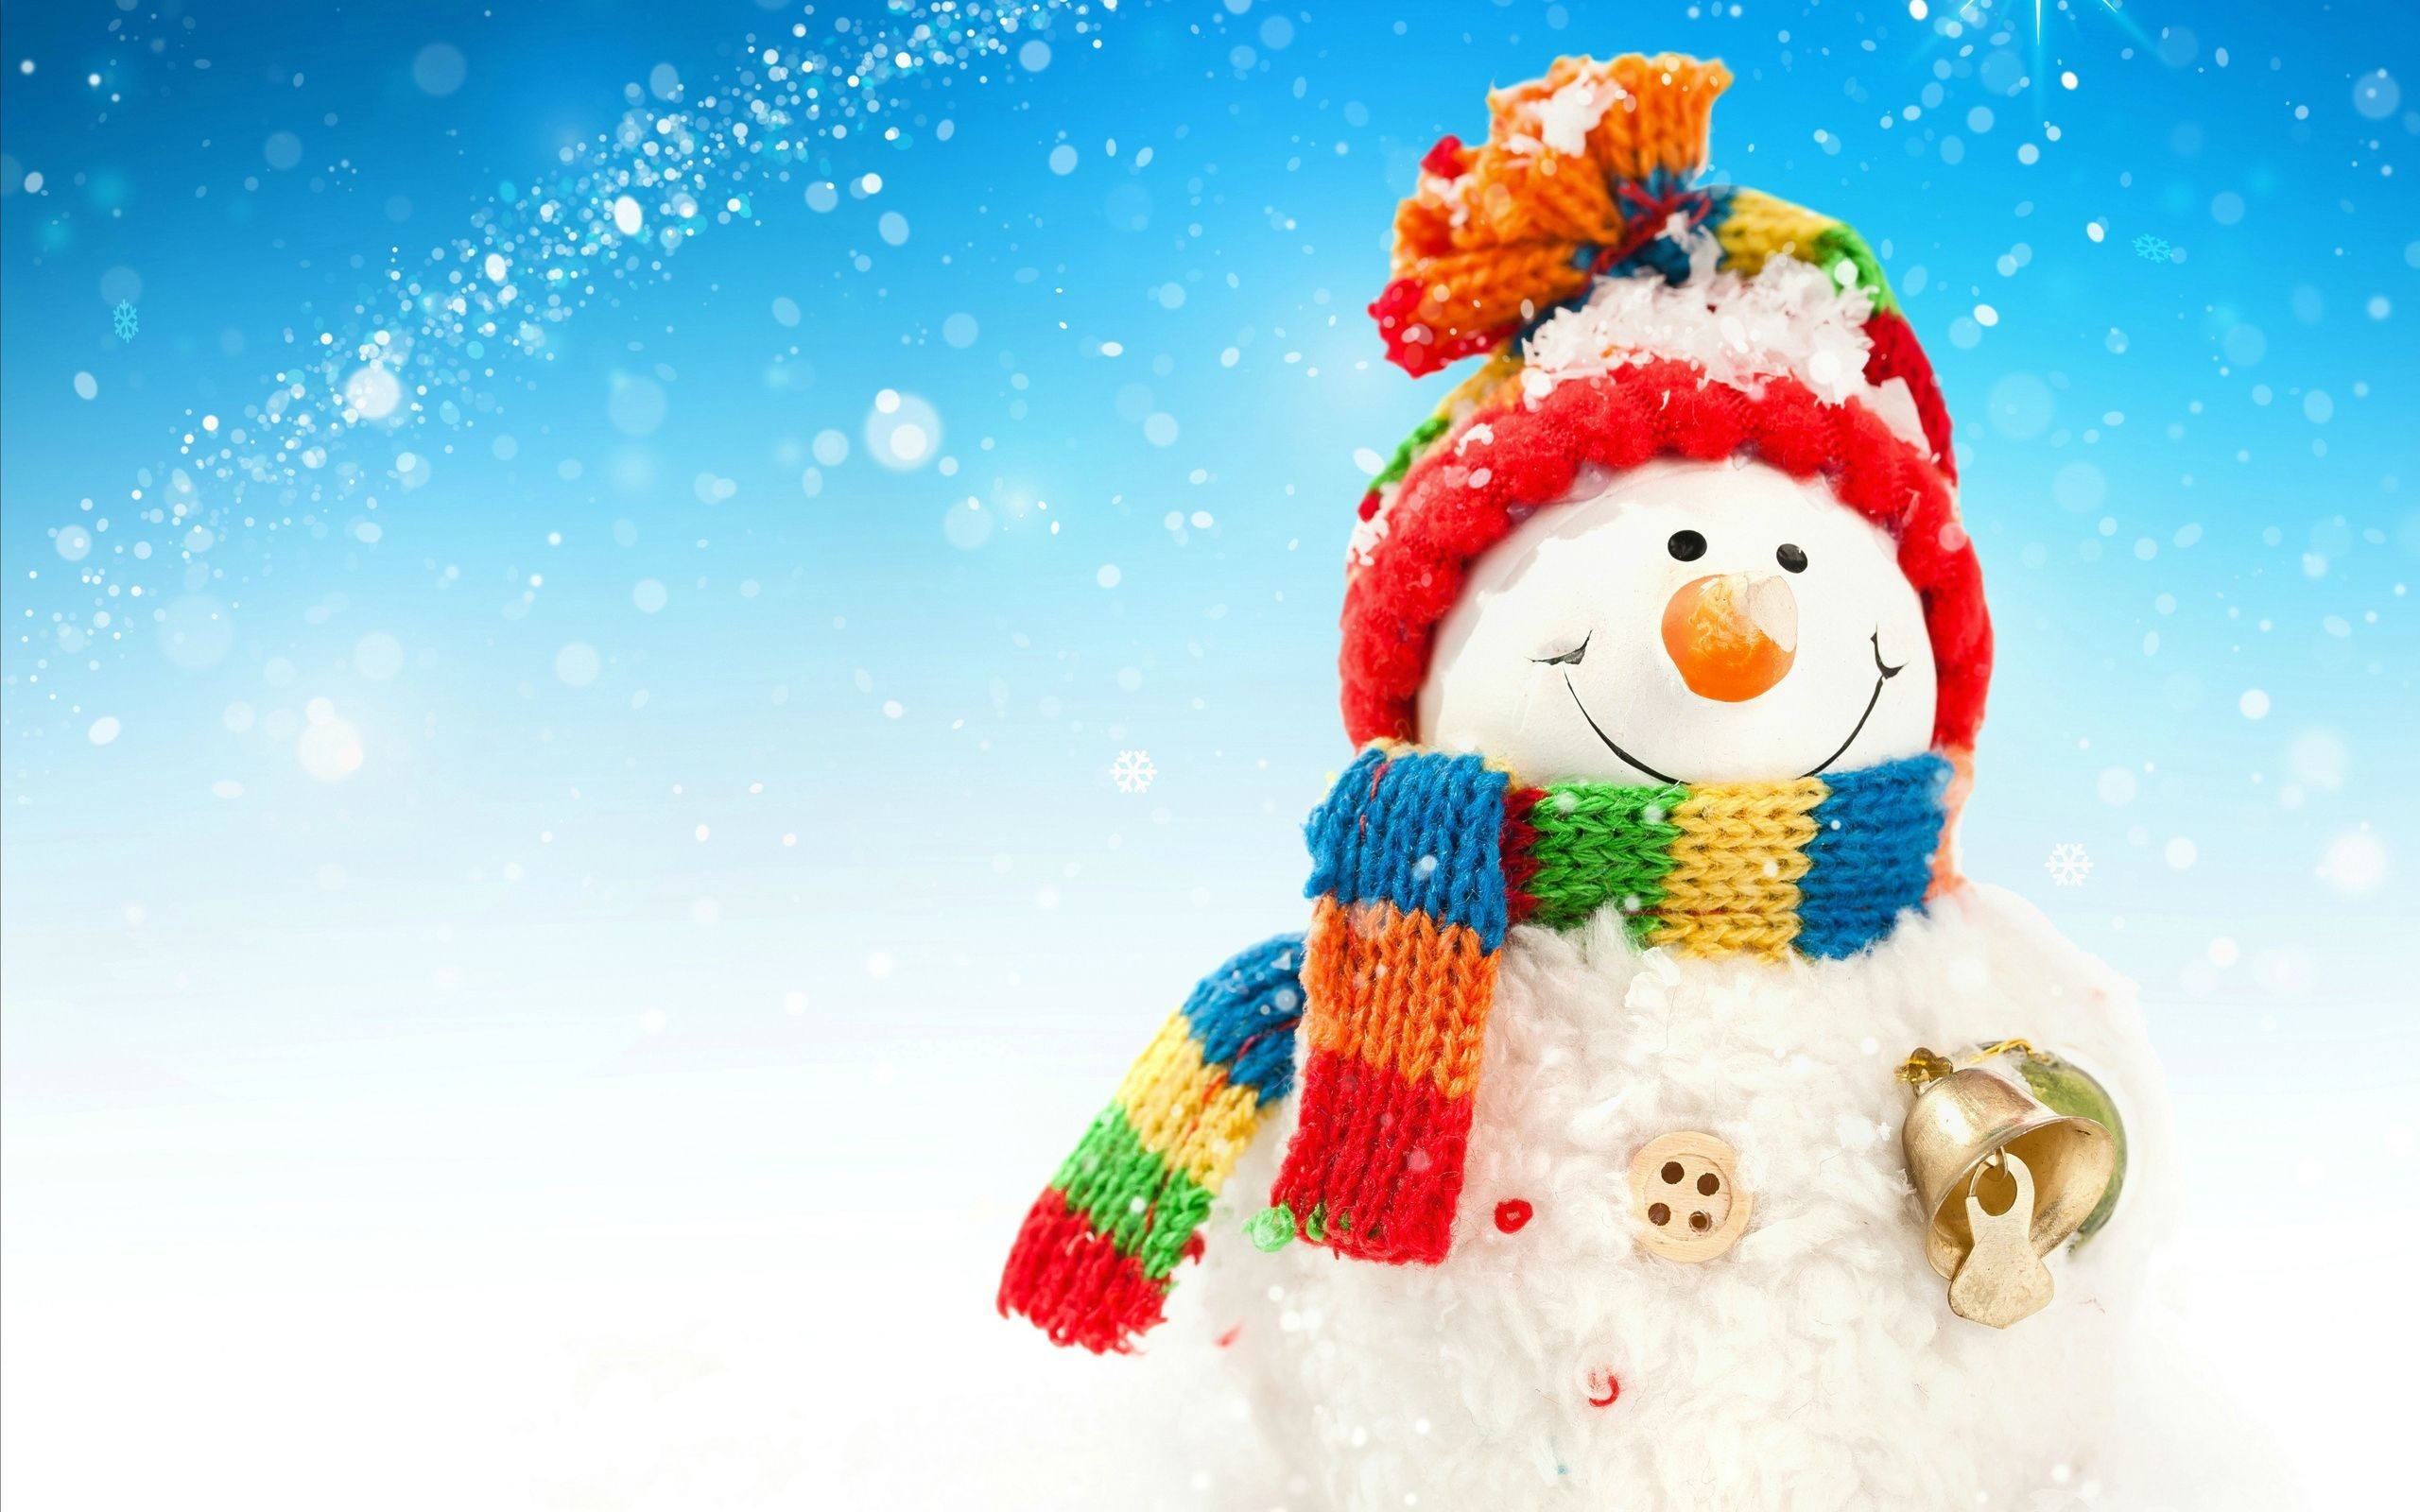 tag snowman desktop wallpapers - photo #12